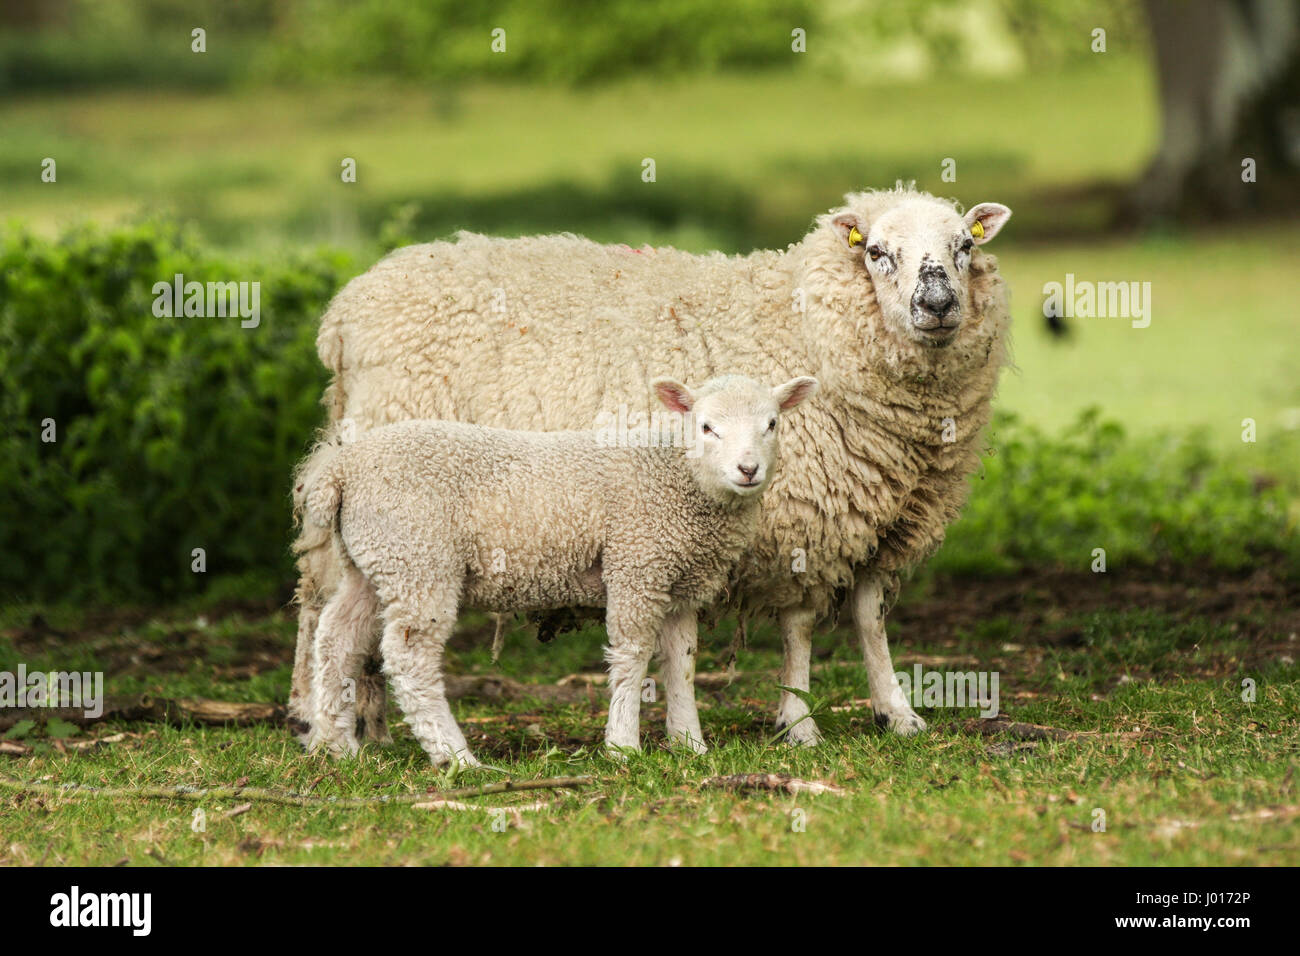 Mother ewe sheep with lamb grazing outside in a grassy field - Stock Image